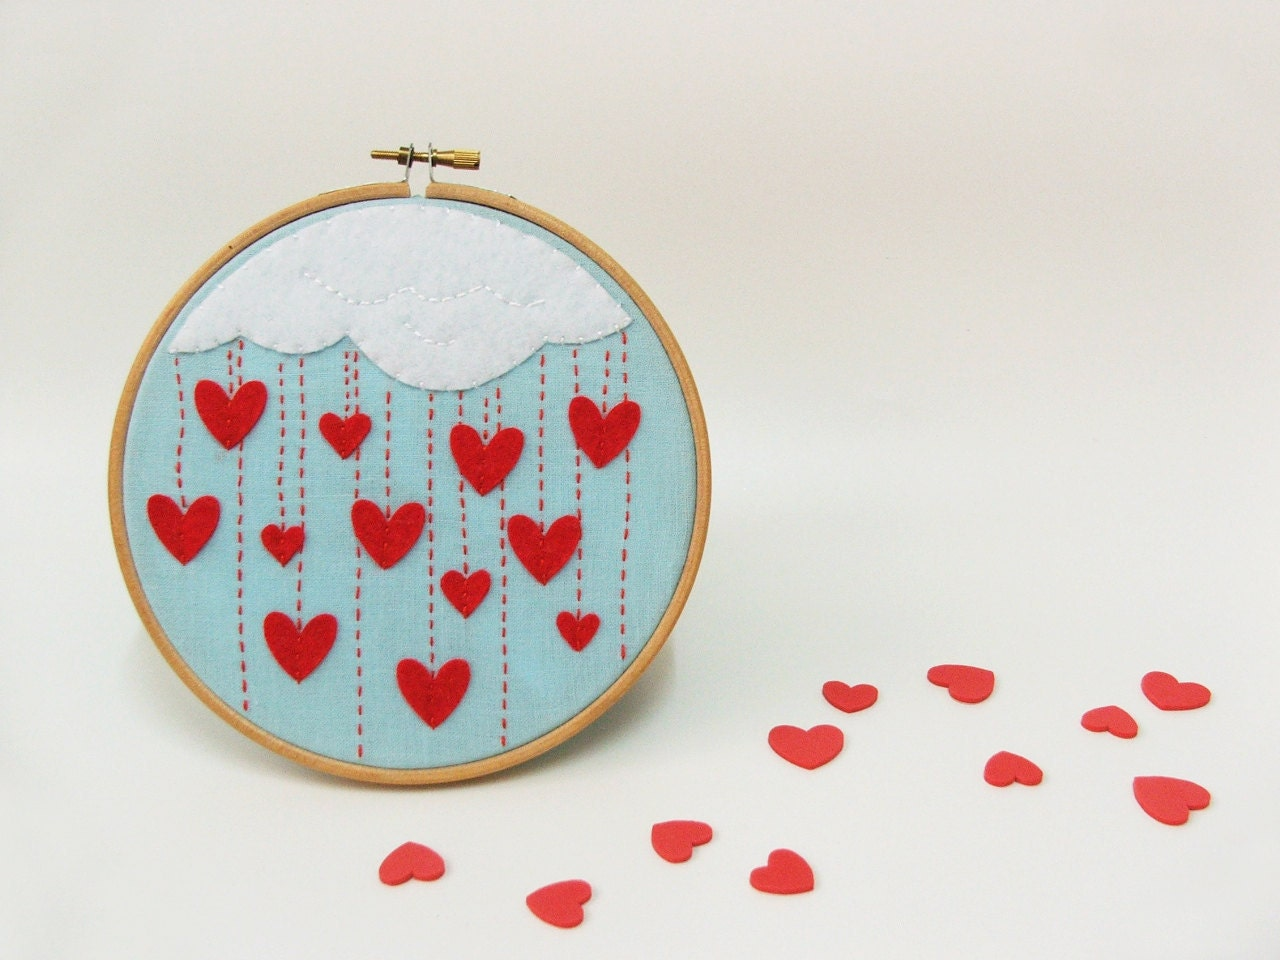 Embroidery hoop wall art cloudy rain of hearts made by